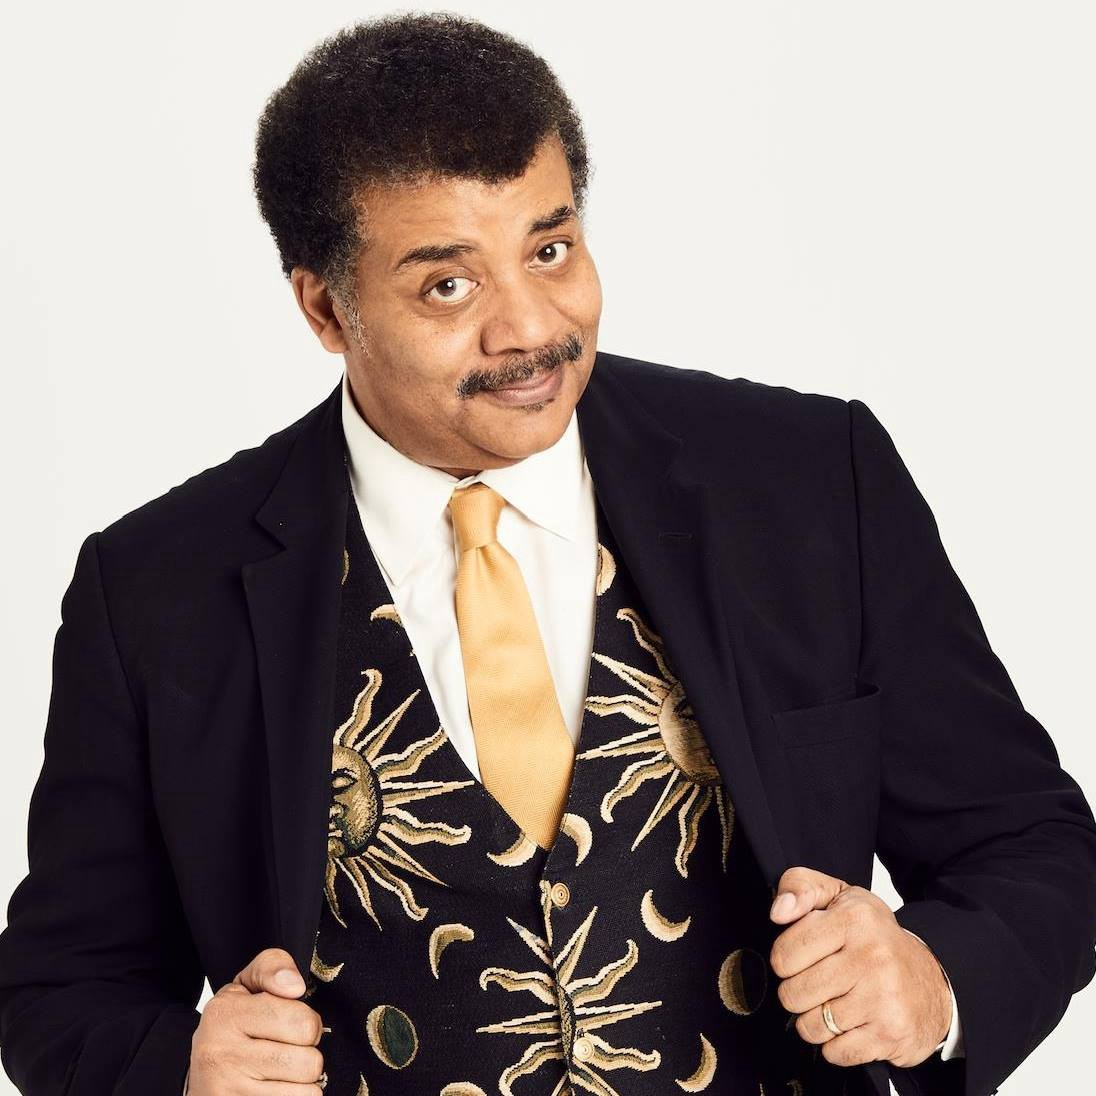 neil degrasse tyson deserves to get called out when attacking our